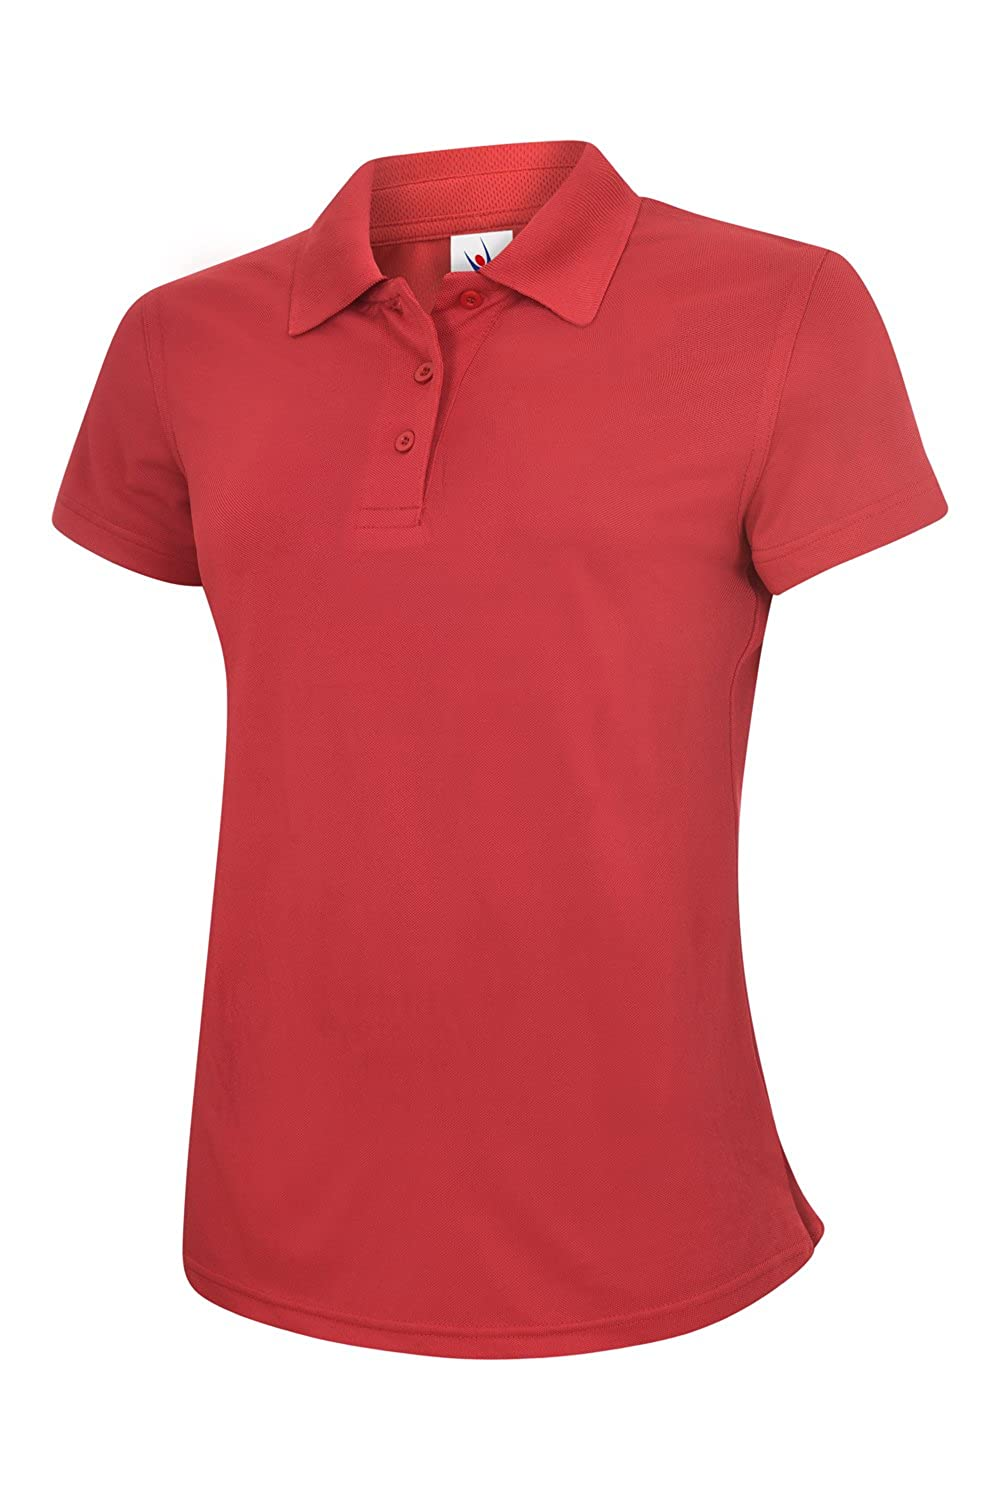 Uneek Ladies Super Cool Workwear Polo Shirt 100% Breathable Sports Style - 5 Colours Available